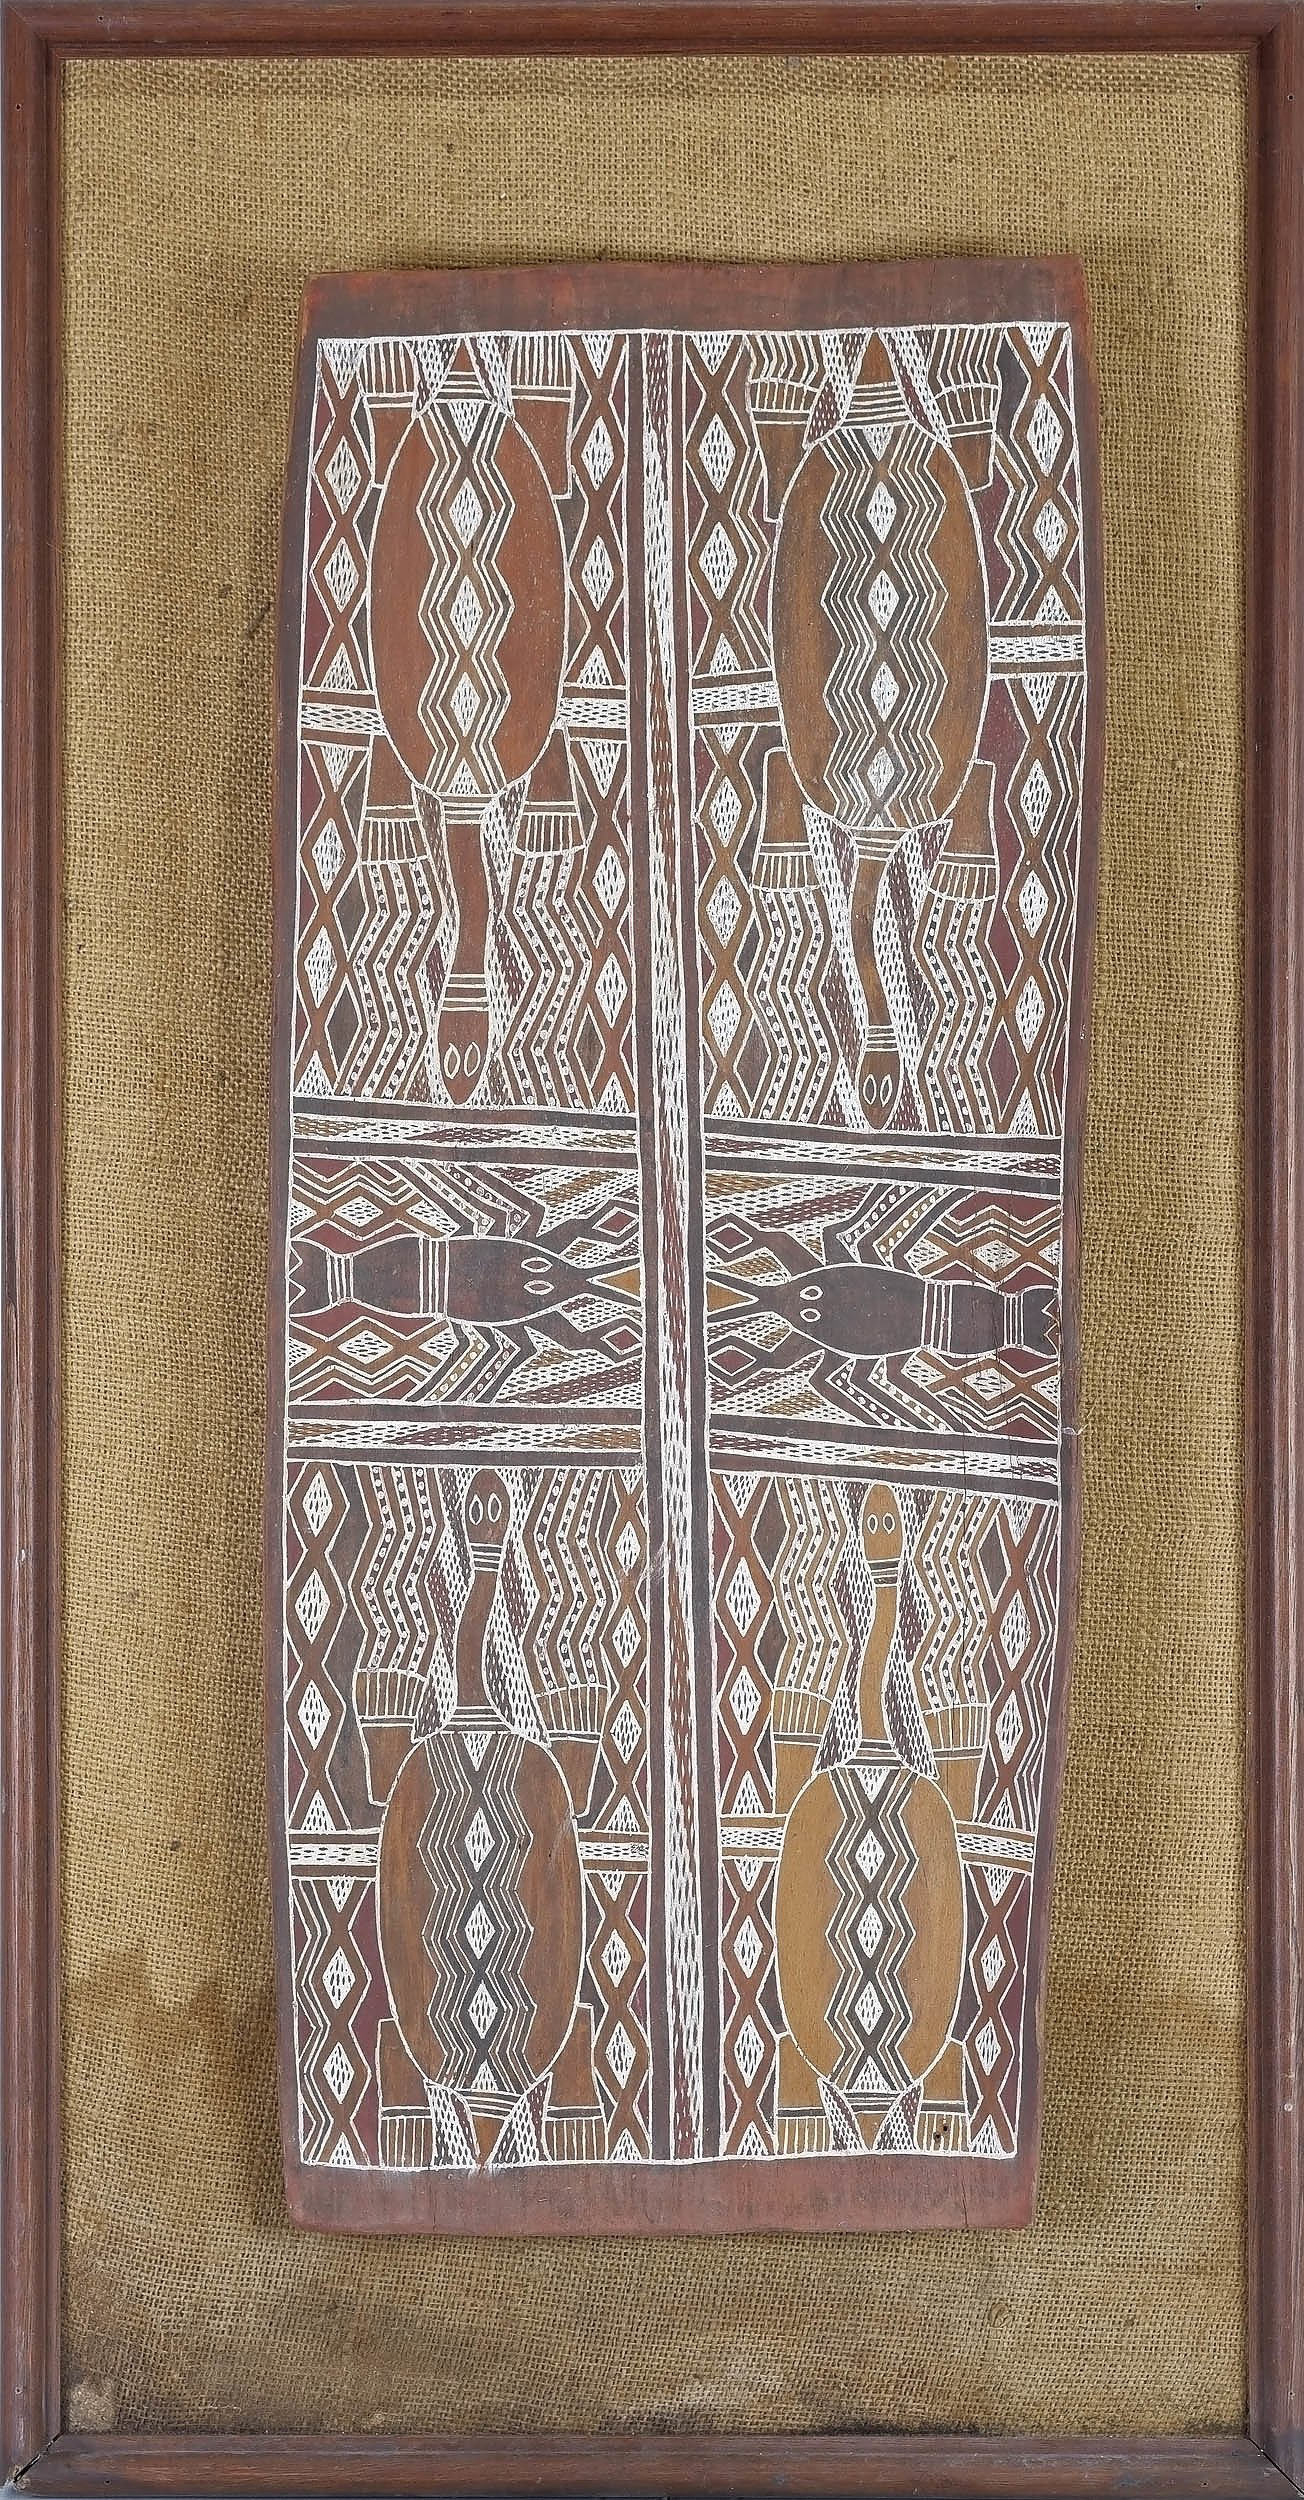 'Gawarin (Yirrkala) Barama the Creator of Yirritja Patterns, Natural Earth Pigments on Eucalyptus Bark'